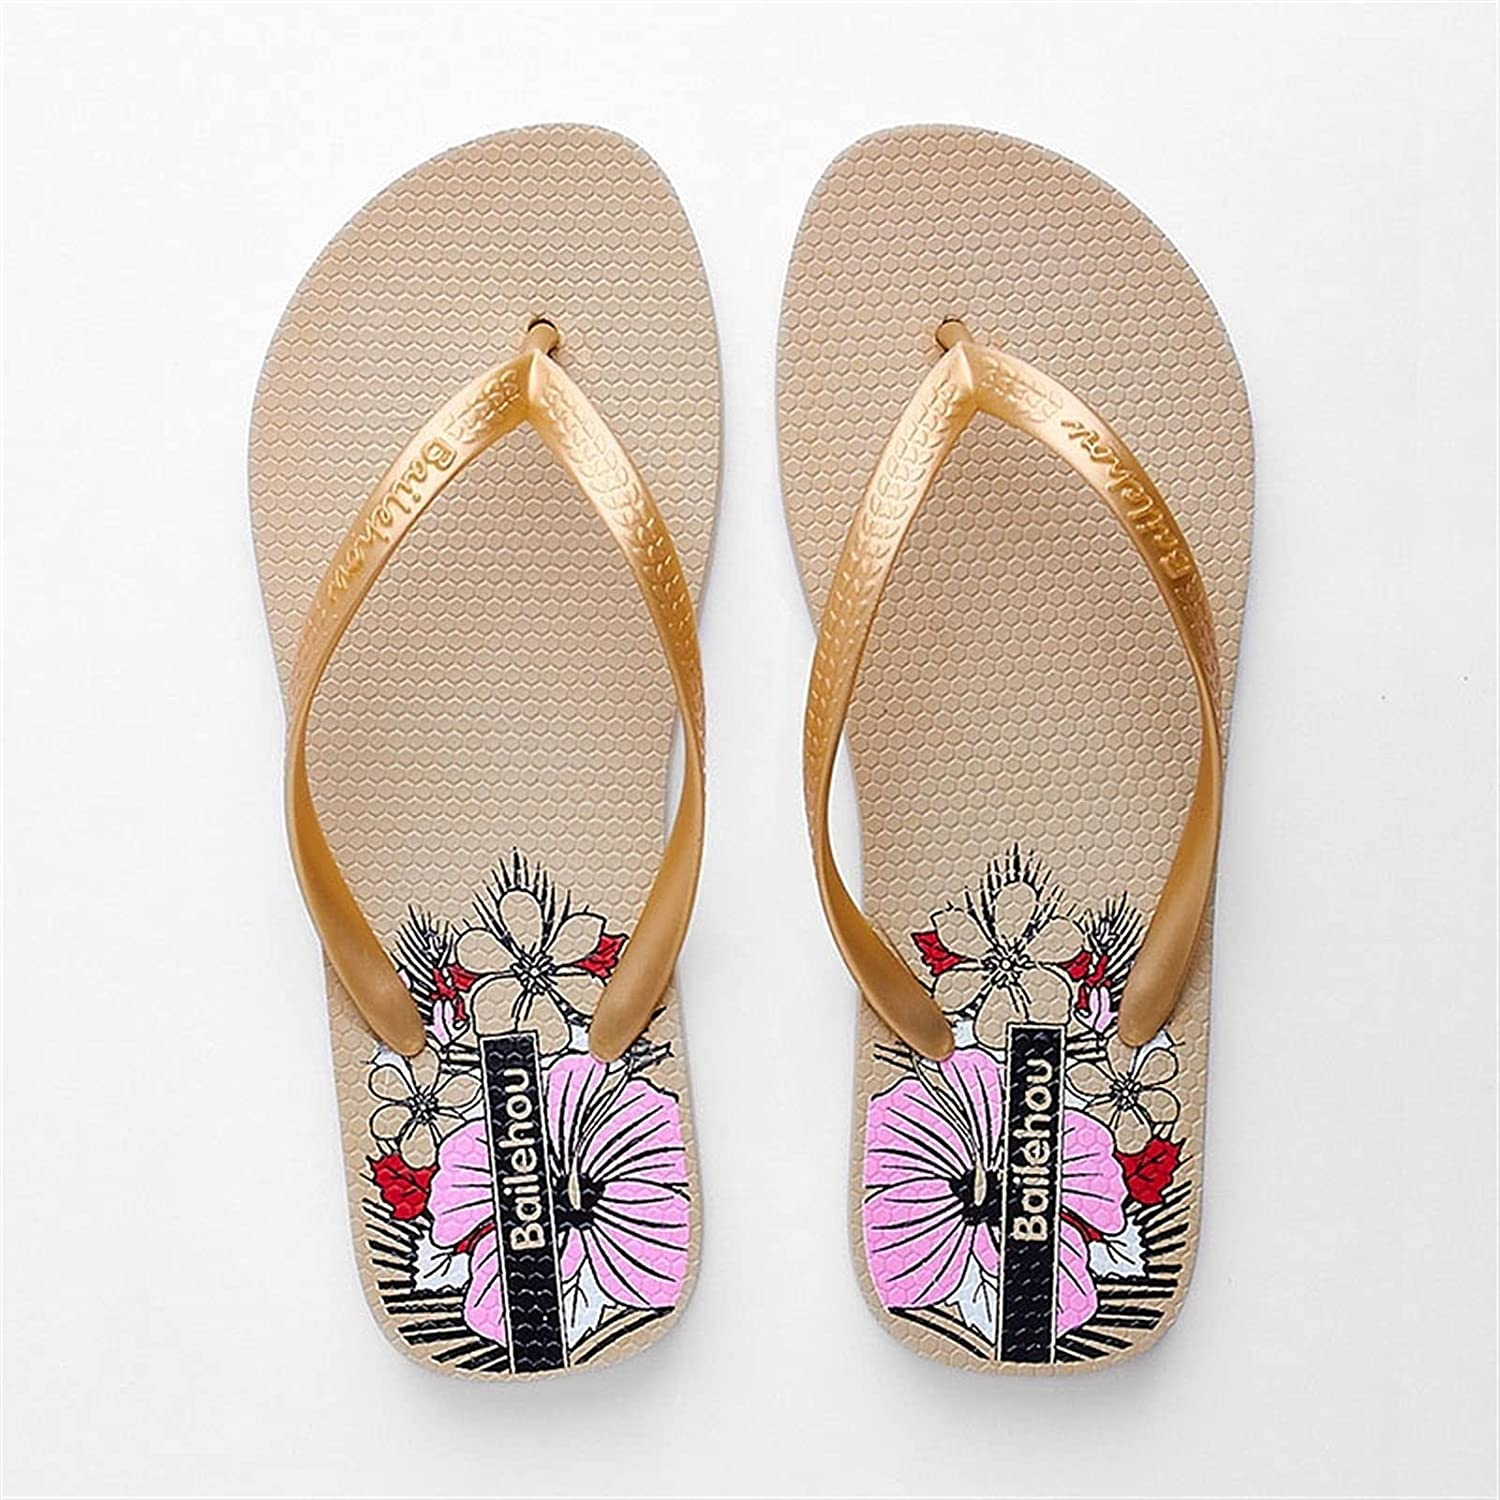 Women Slippers Beach Summer Flip Flops Designer Fashion Outlet ☆ Free Shipping P Colorado Springs Mall Ladies